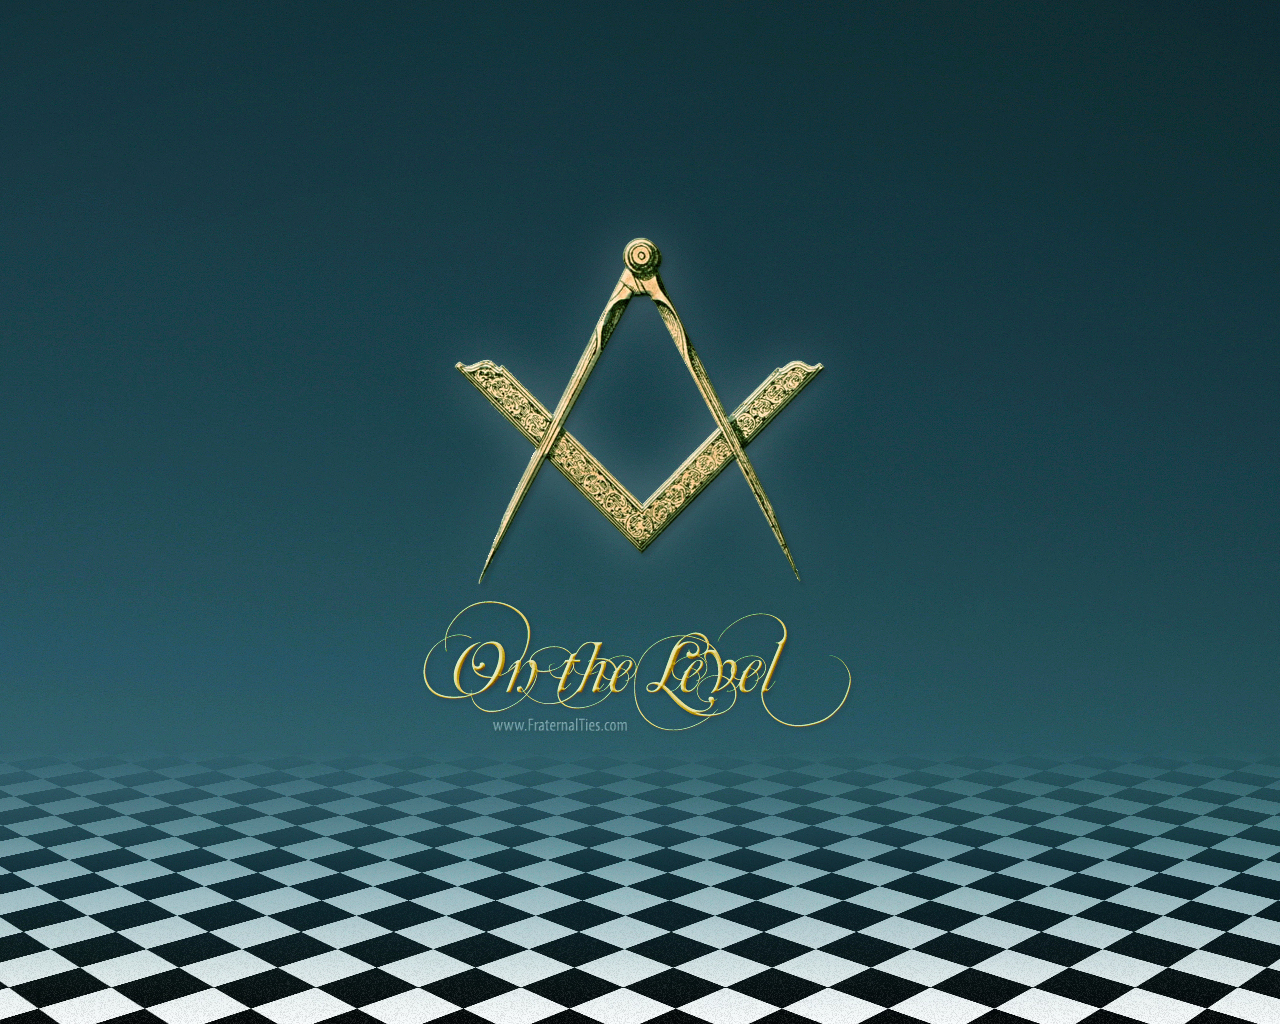 On The Level   Freemason Wallpapers FraternalTies 1280x1024